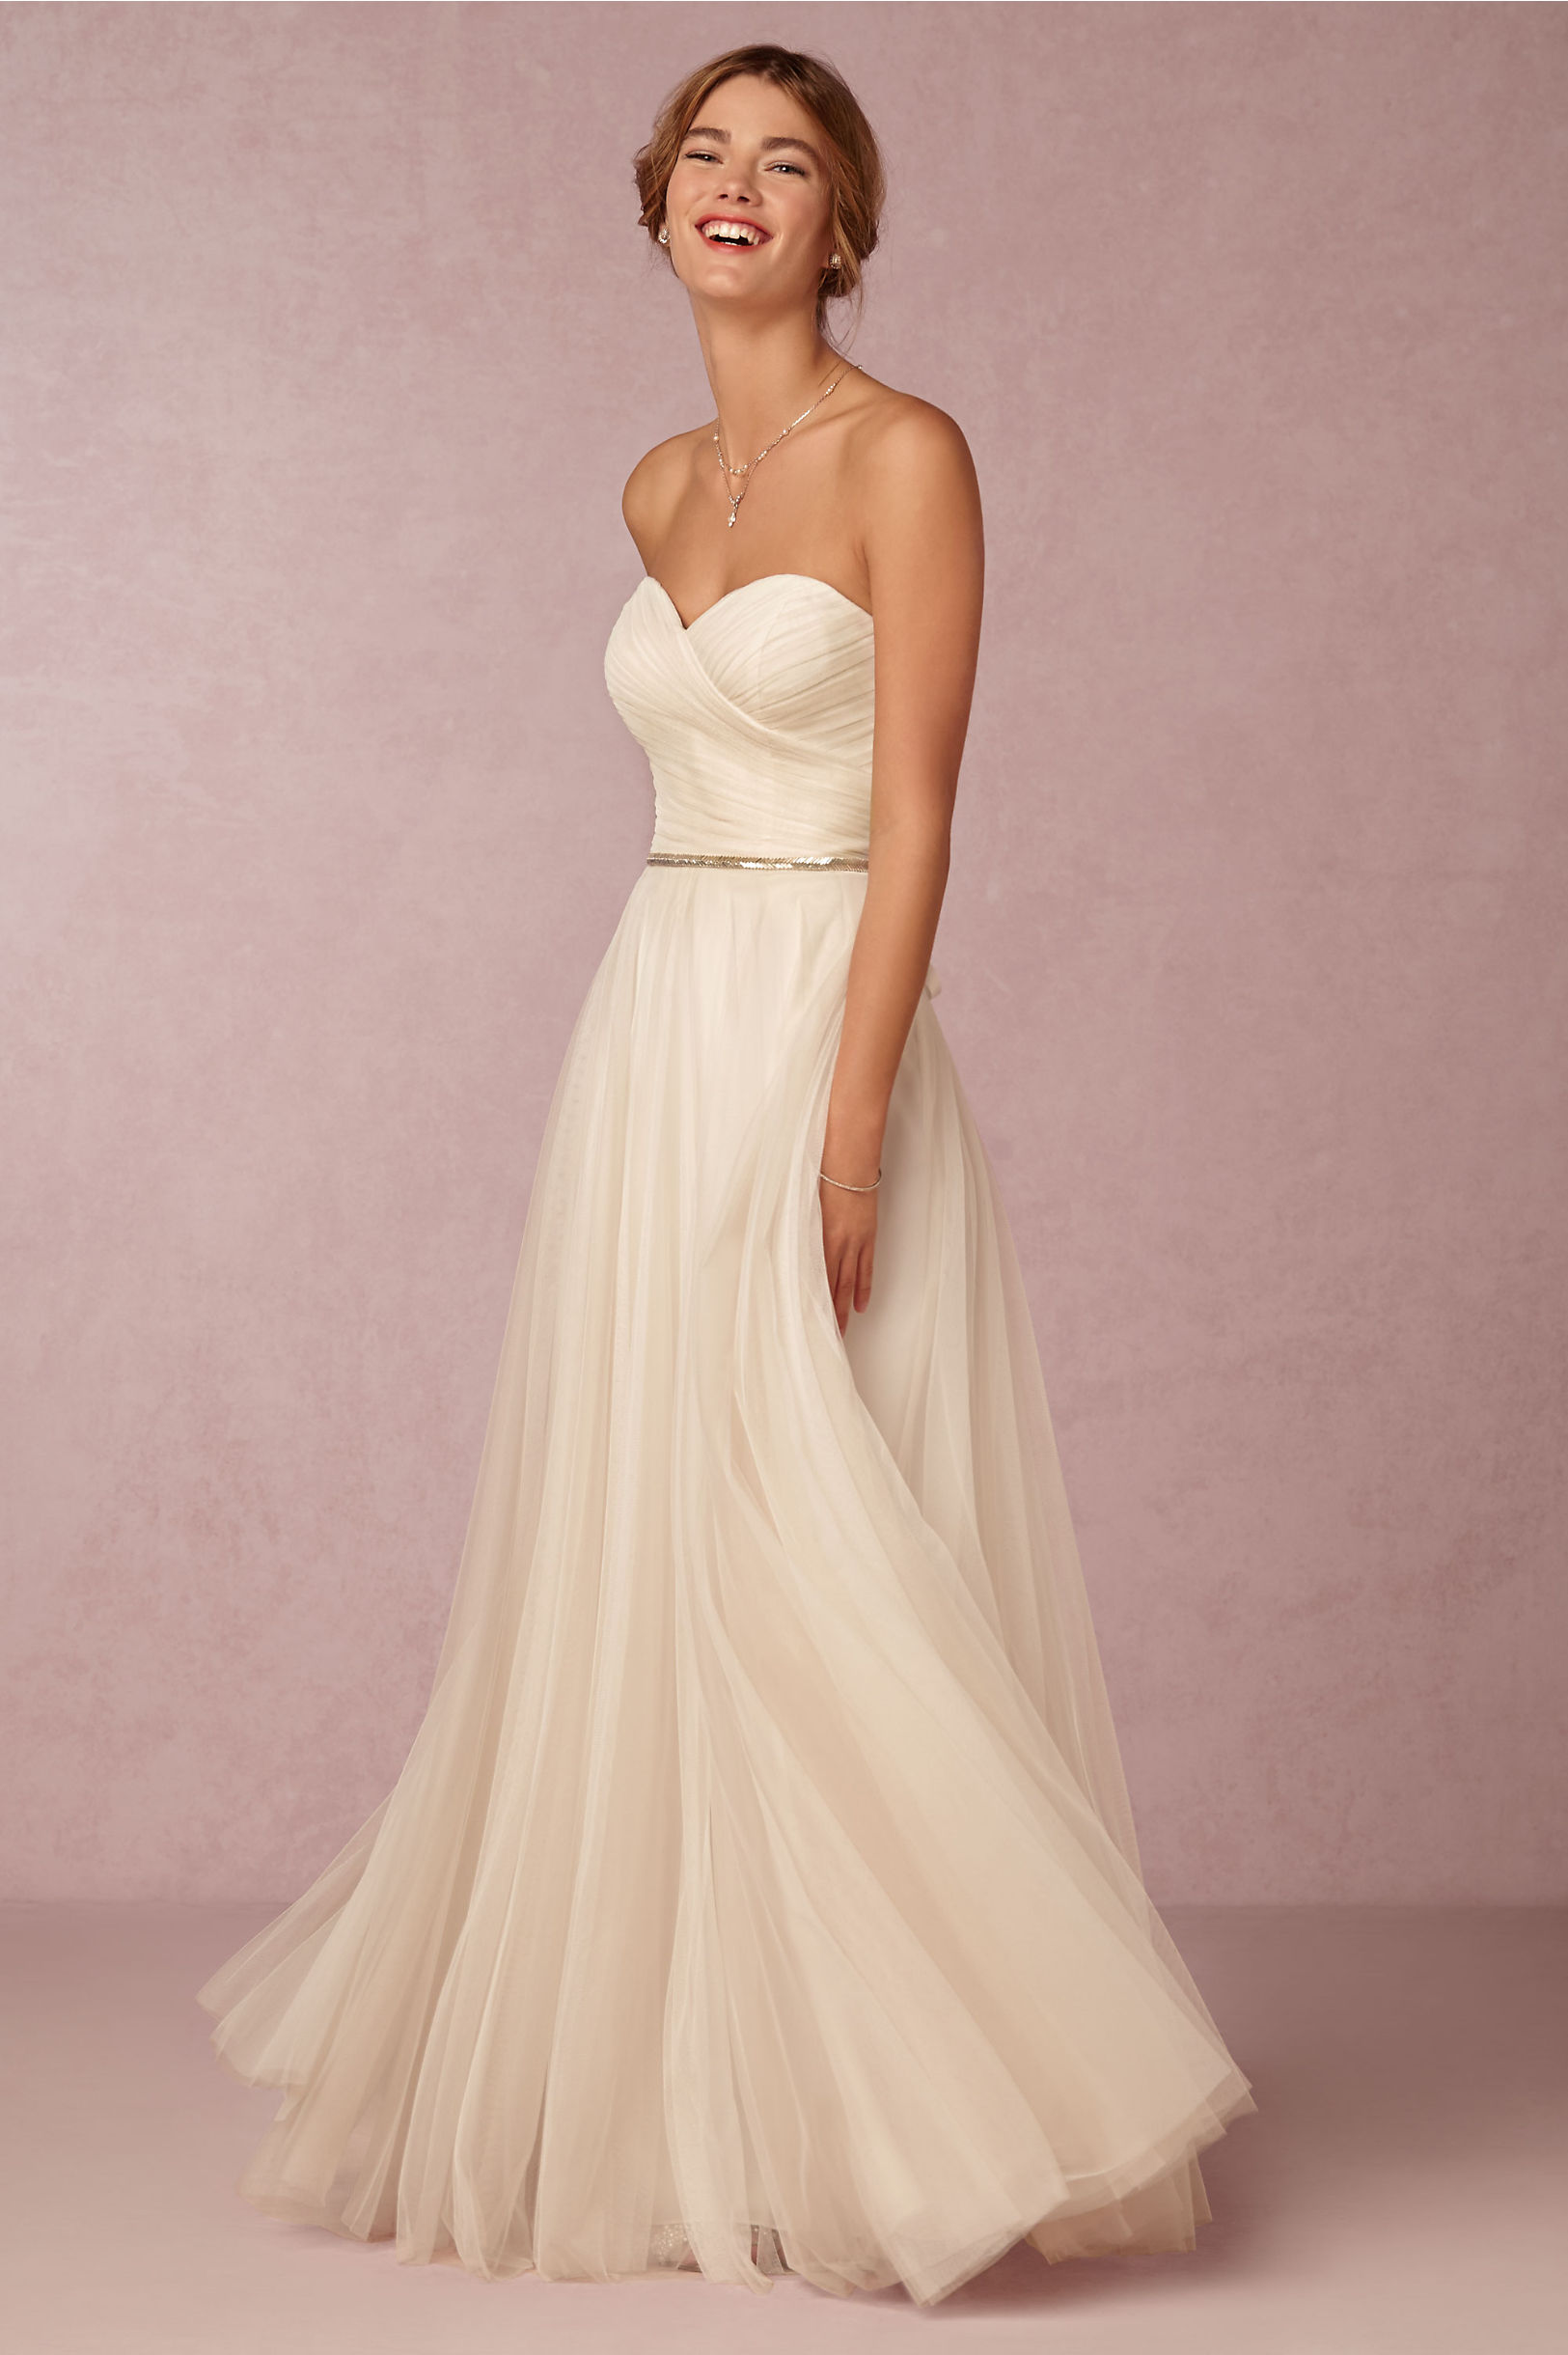 Calla gown moonlight in bride bhldn moonlight calla gown bhldn ombrellifo Choice Image